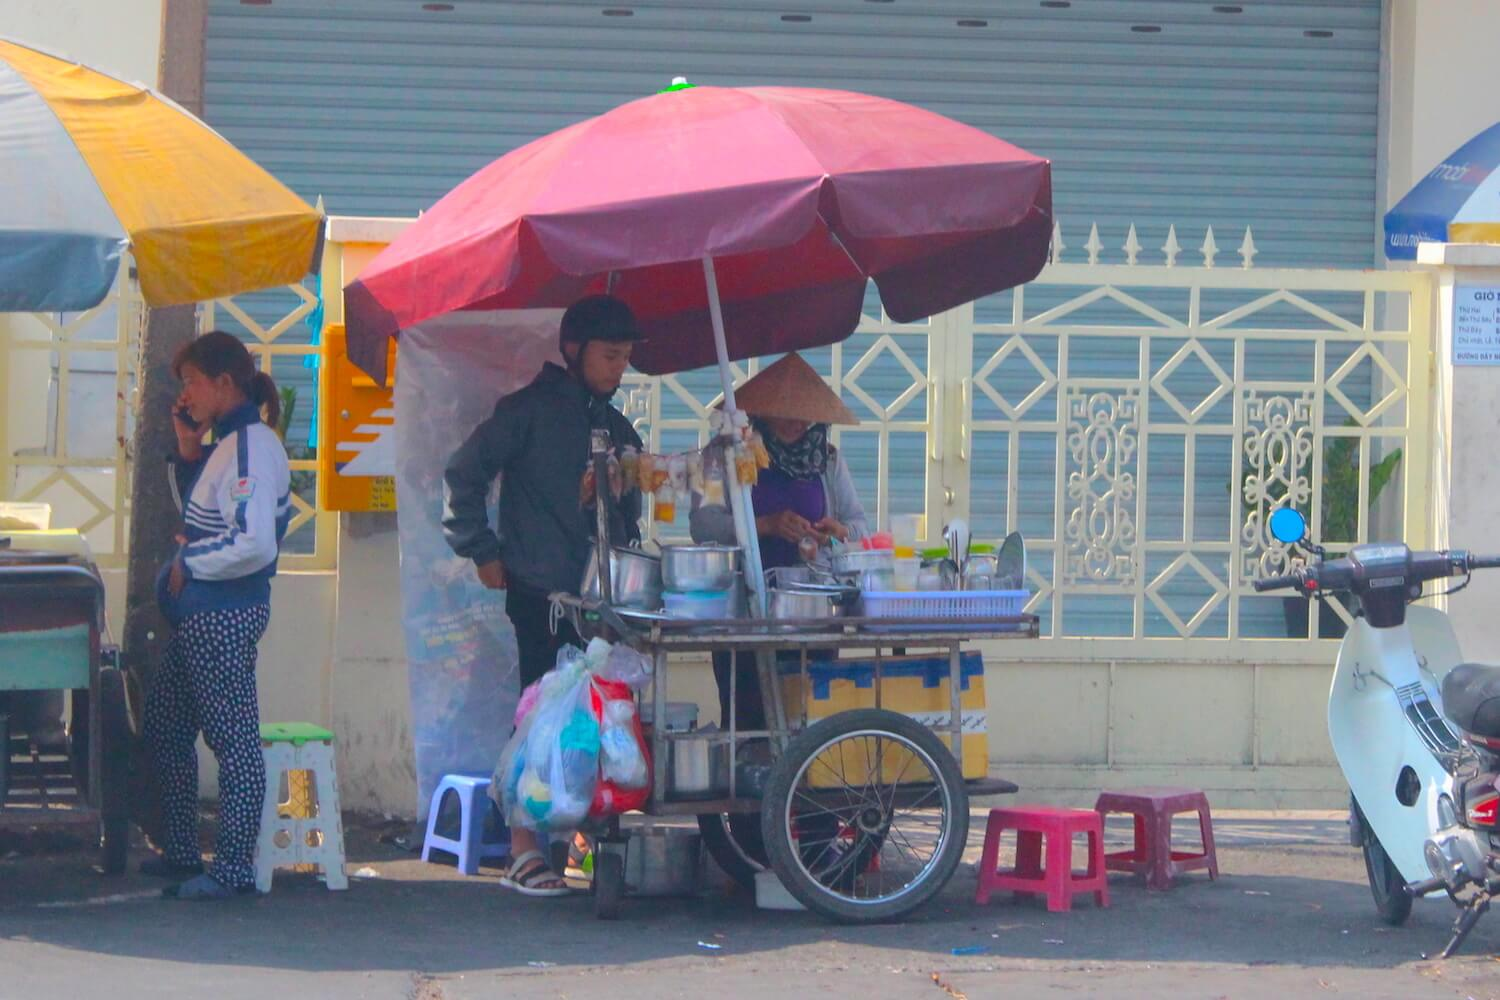 street food cart in ho chi minh city